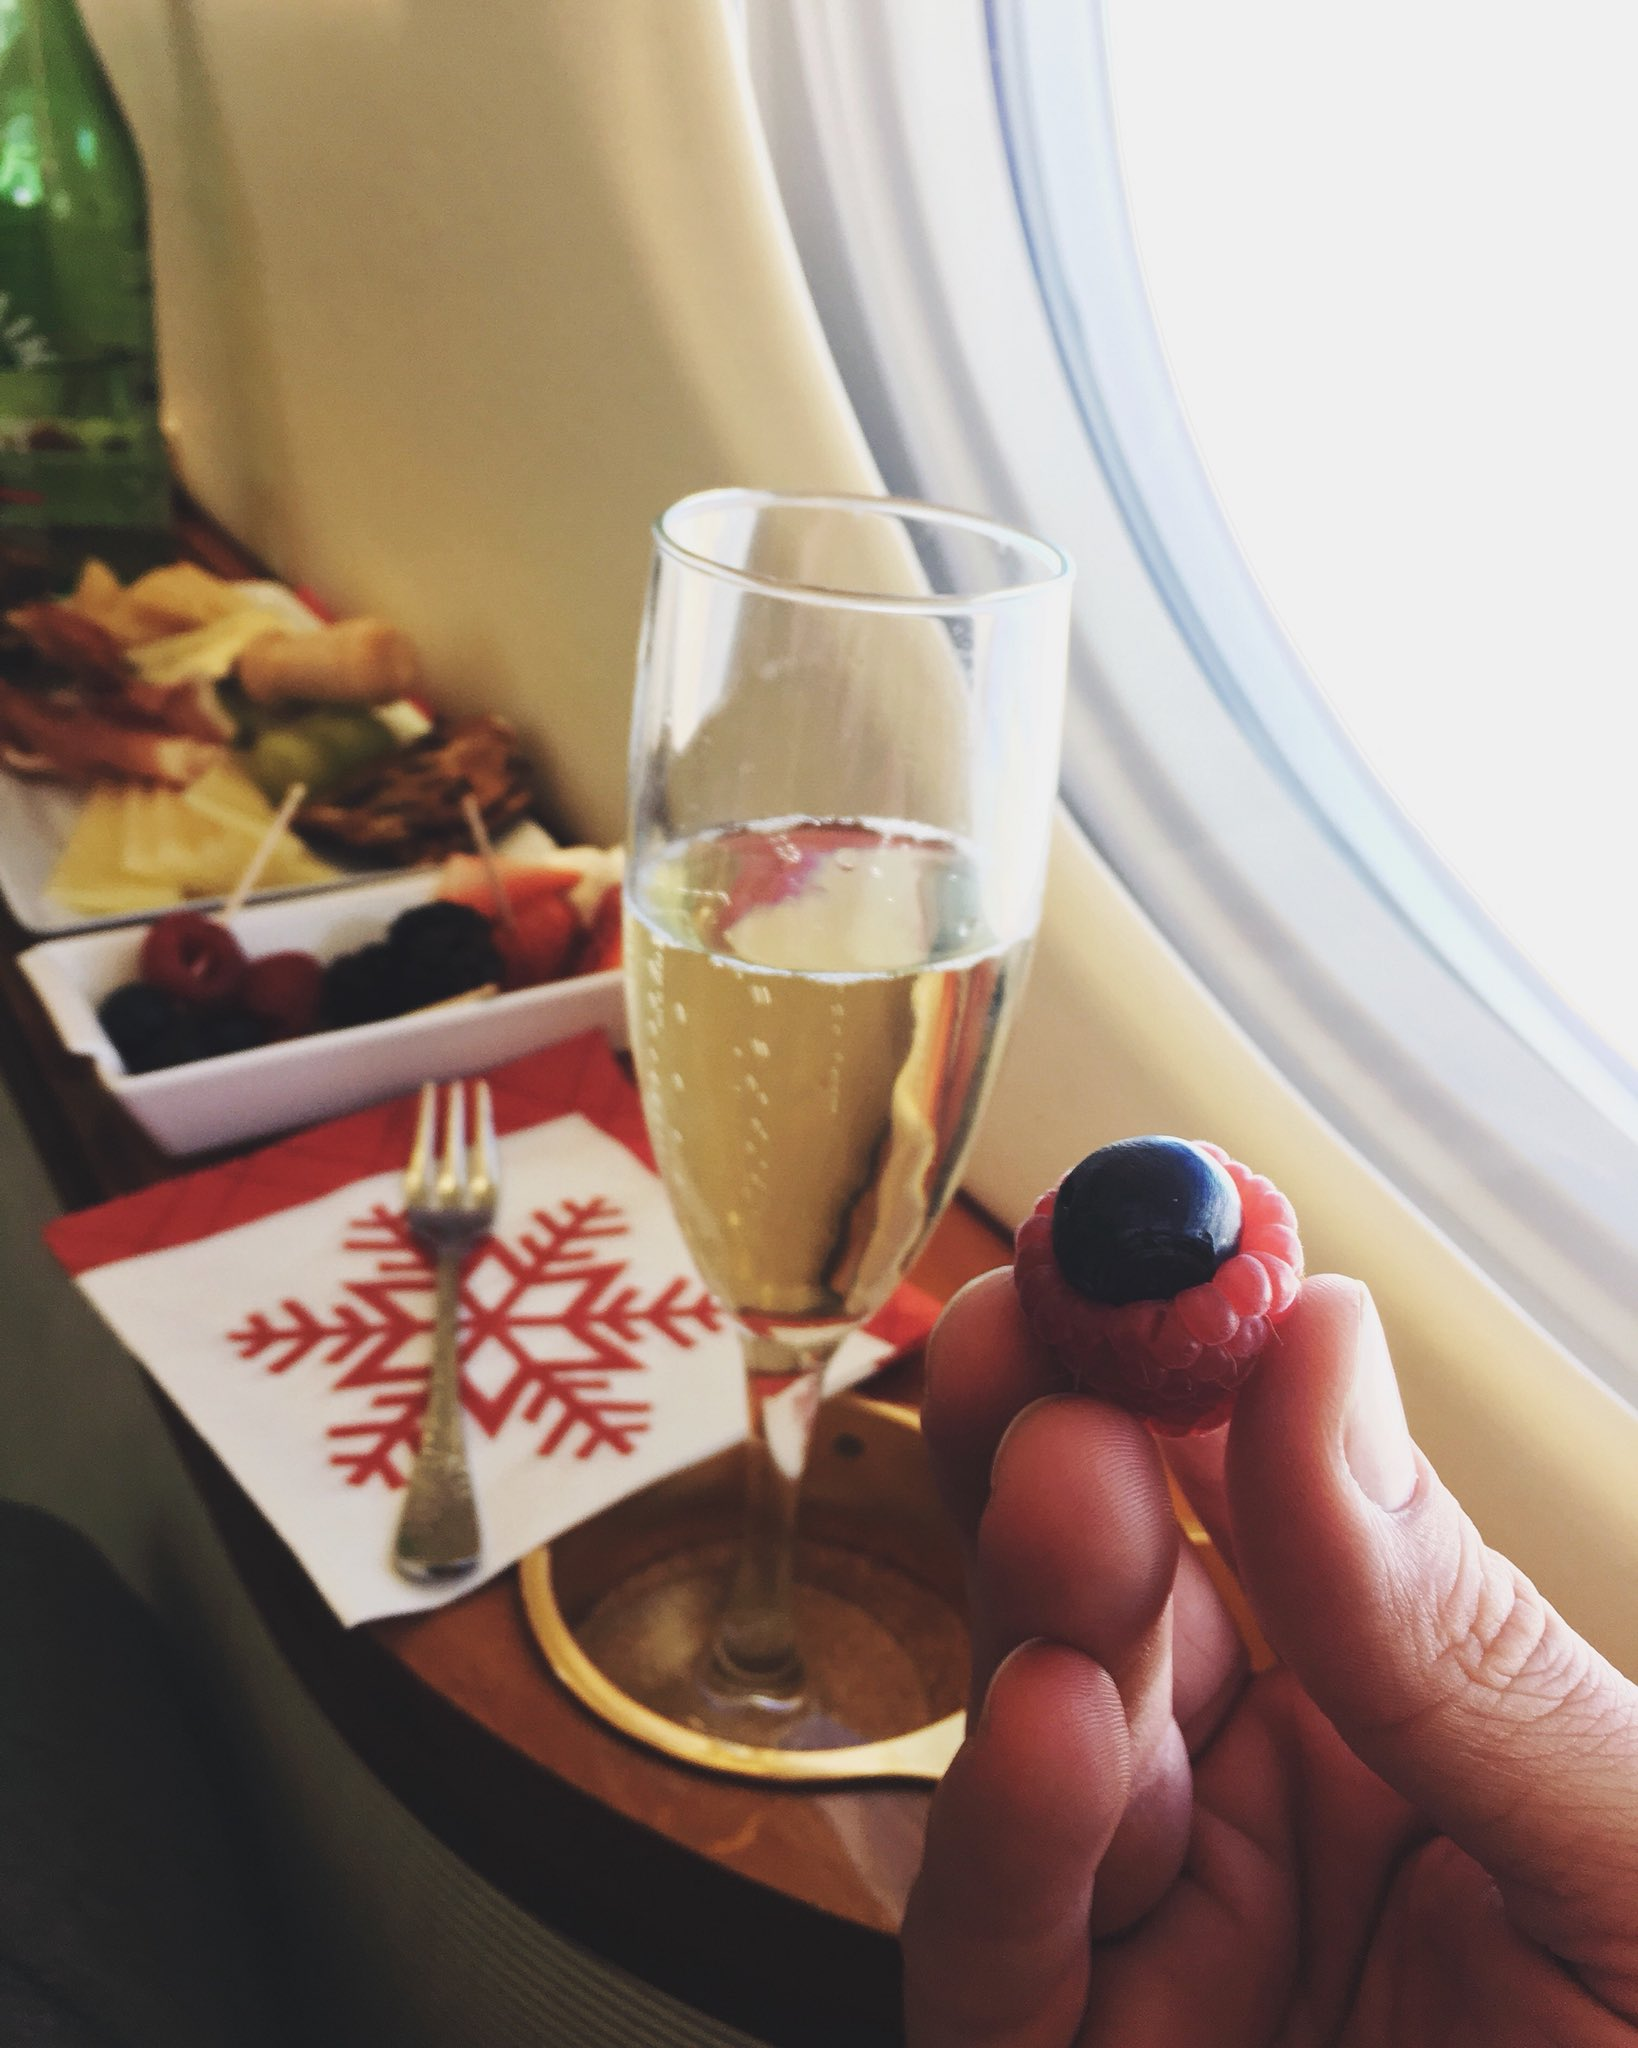 #BRASPBERRY & BUBBLES, BISHES! ��And happiest holidays folks! ���� https://t.co/aOI9Gog3sd